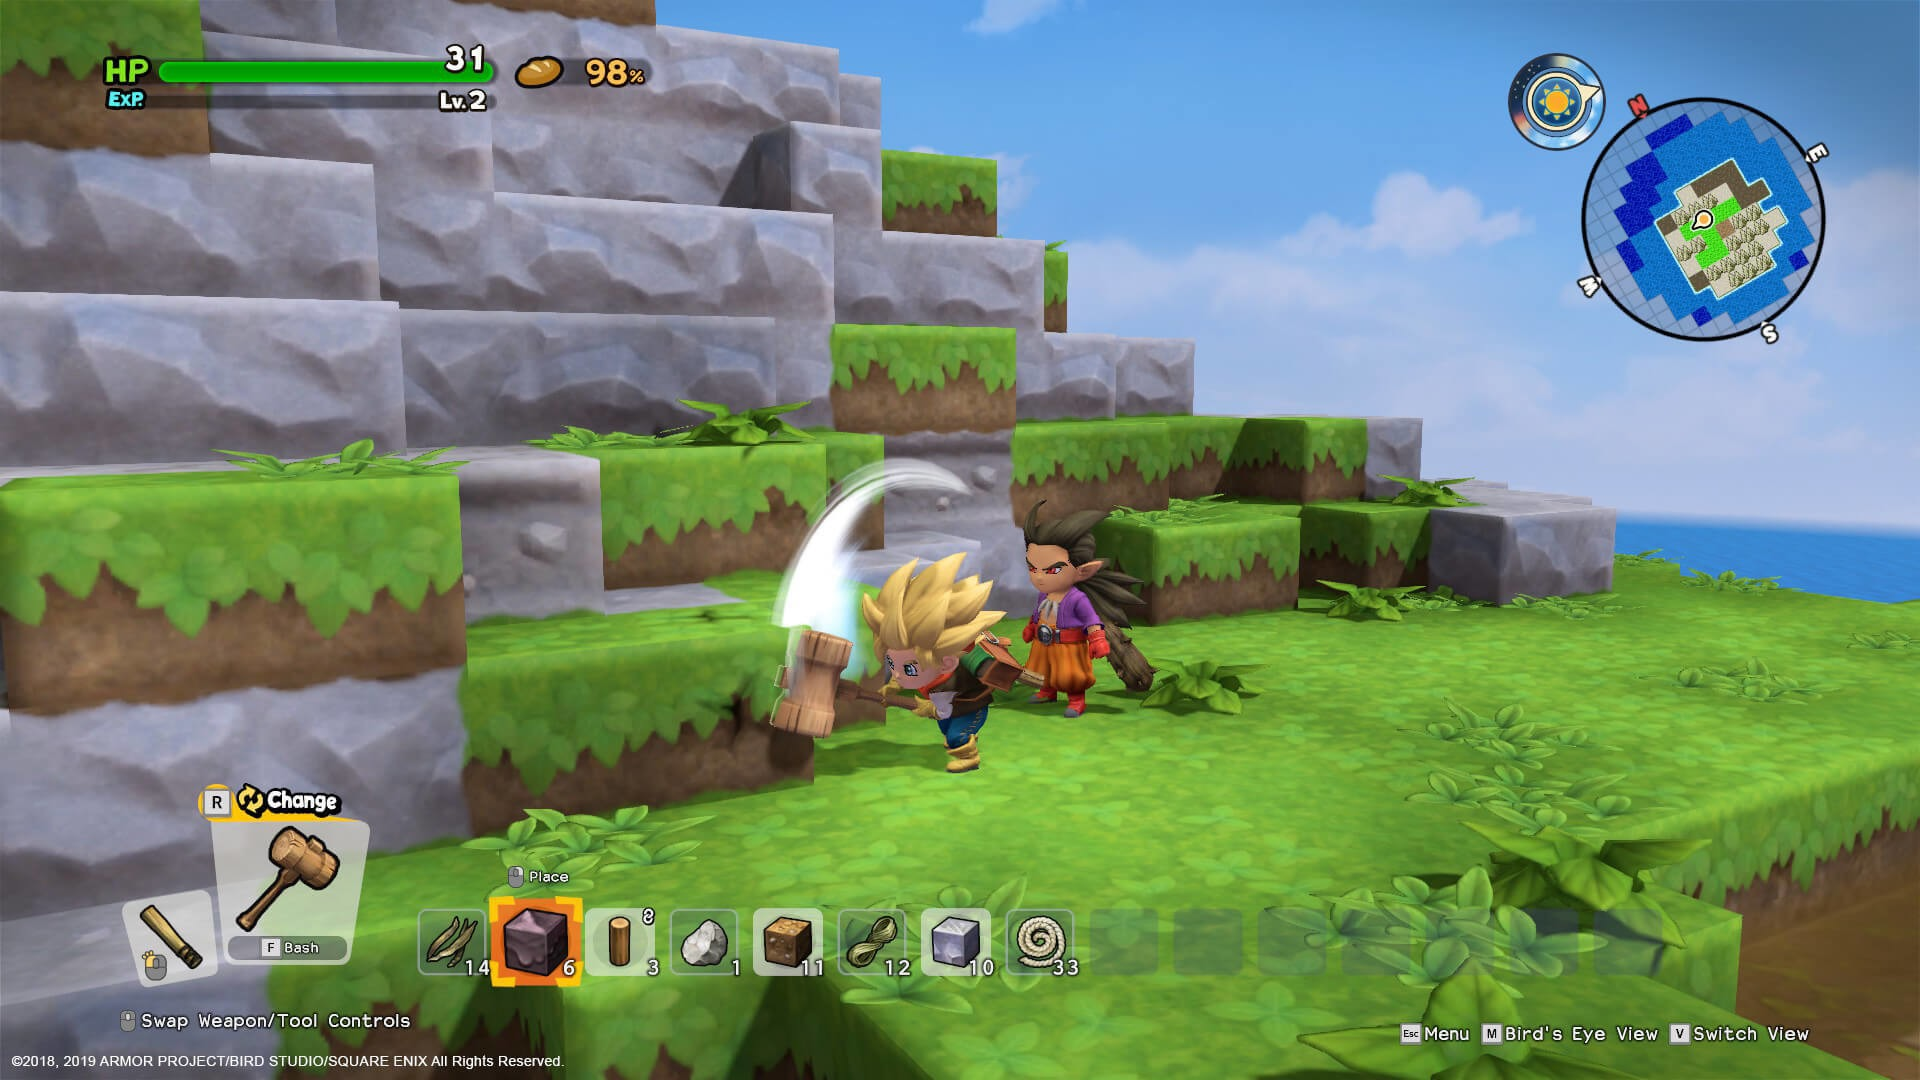 DRAGON QUEST BUILDERS 2 is coming to the PC on December 10th